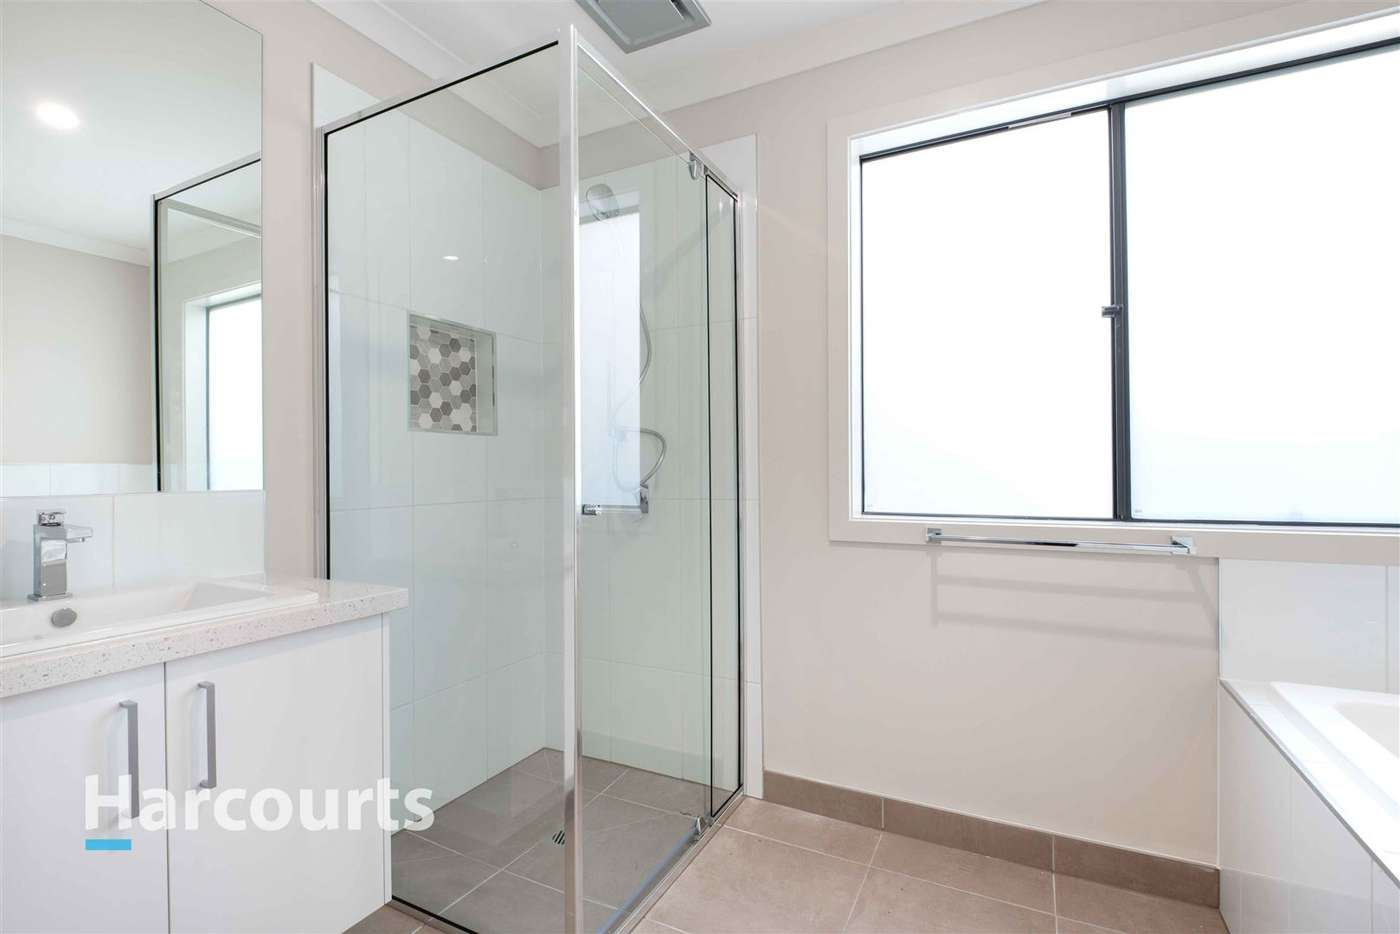 Sixth view of Homely house listing, 33 Australorp Drive, Clyde North VIC 3978